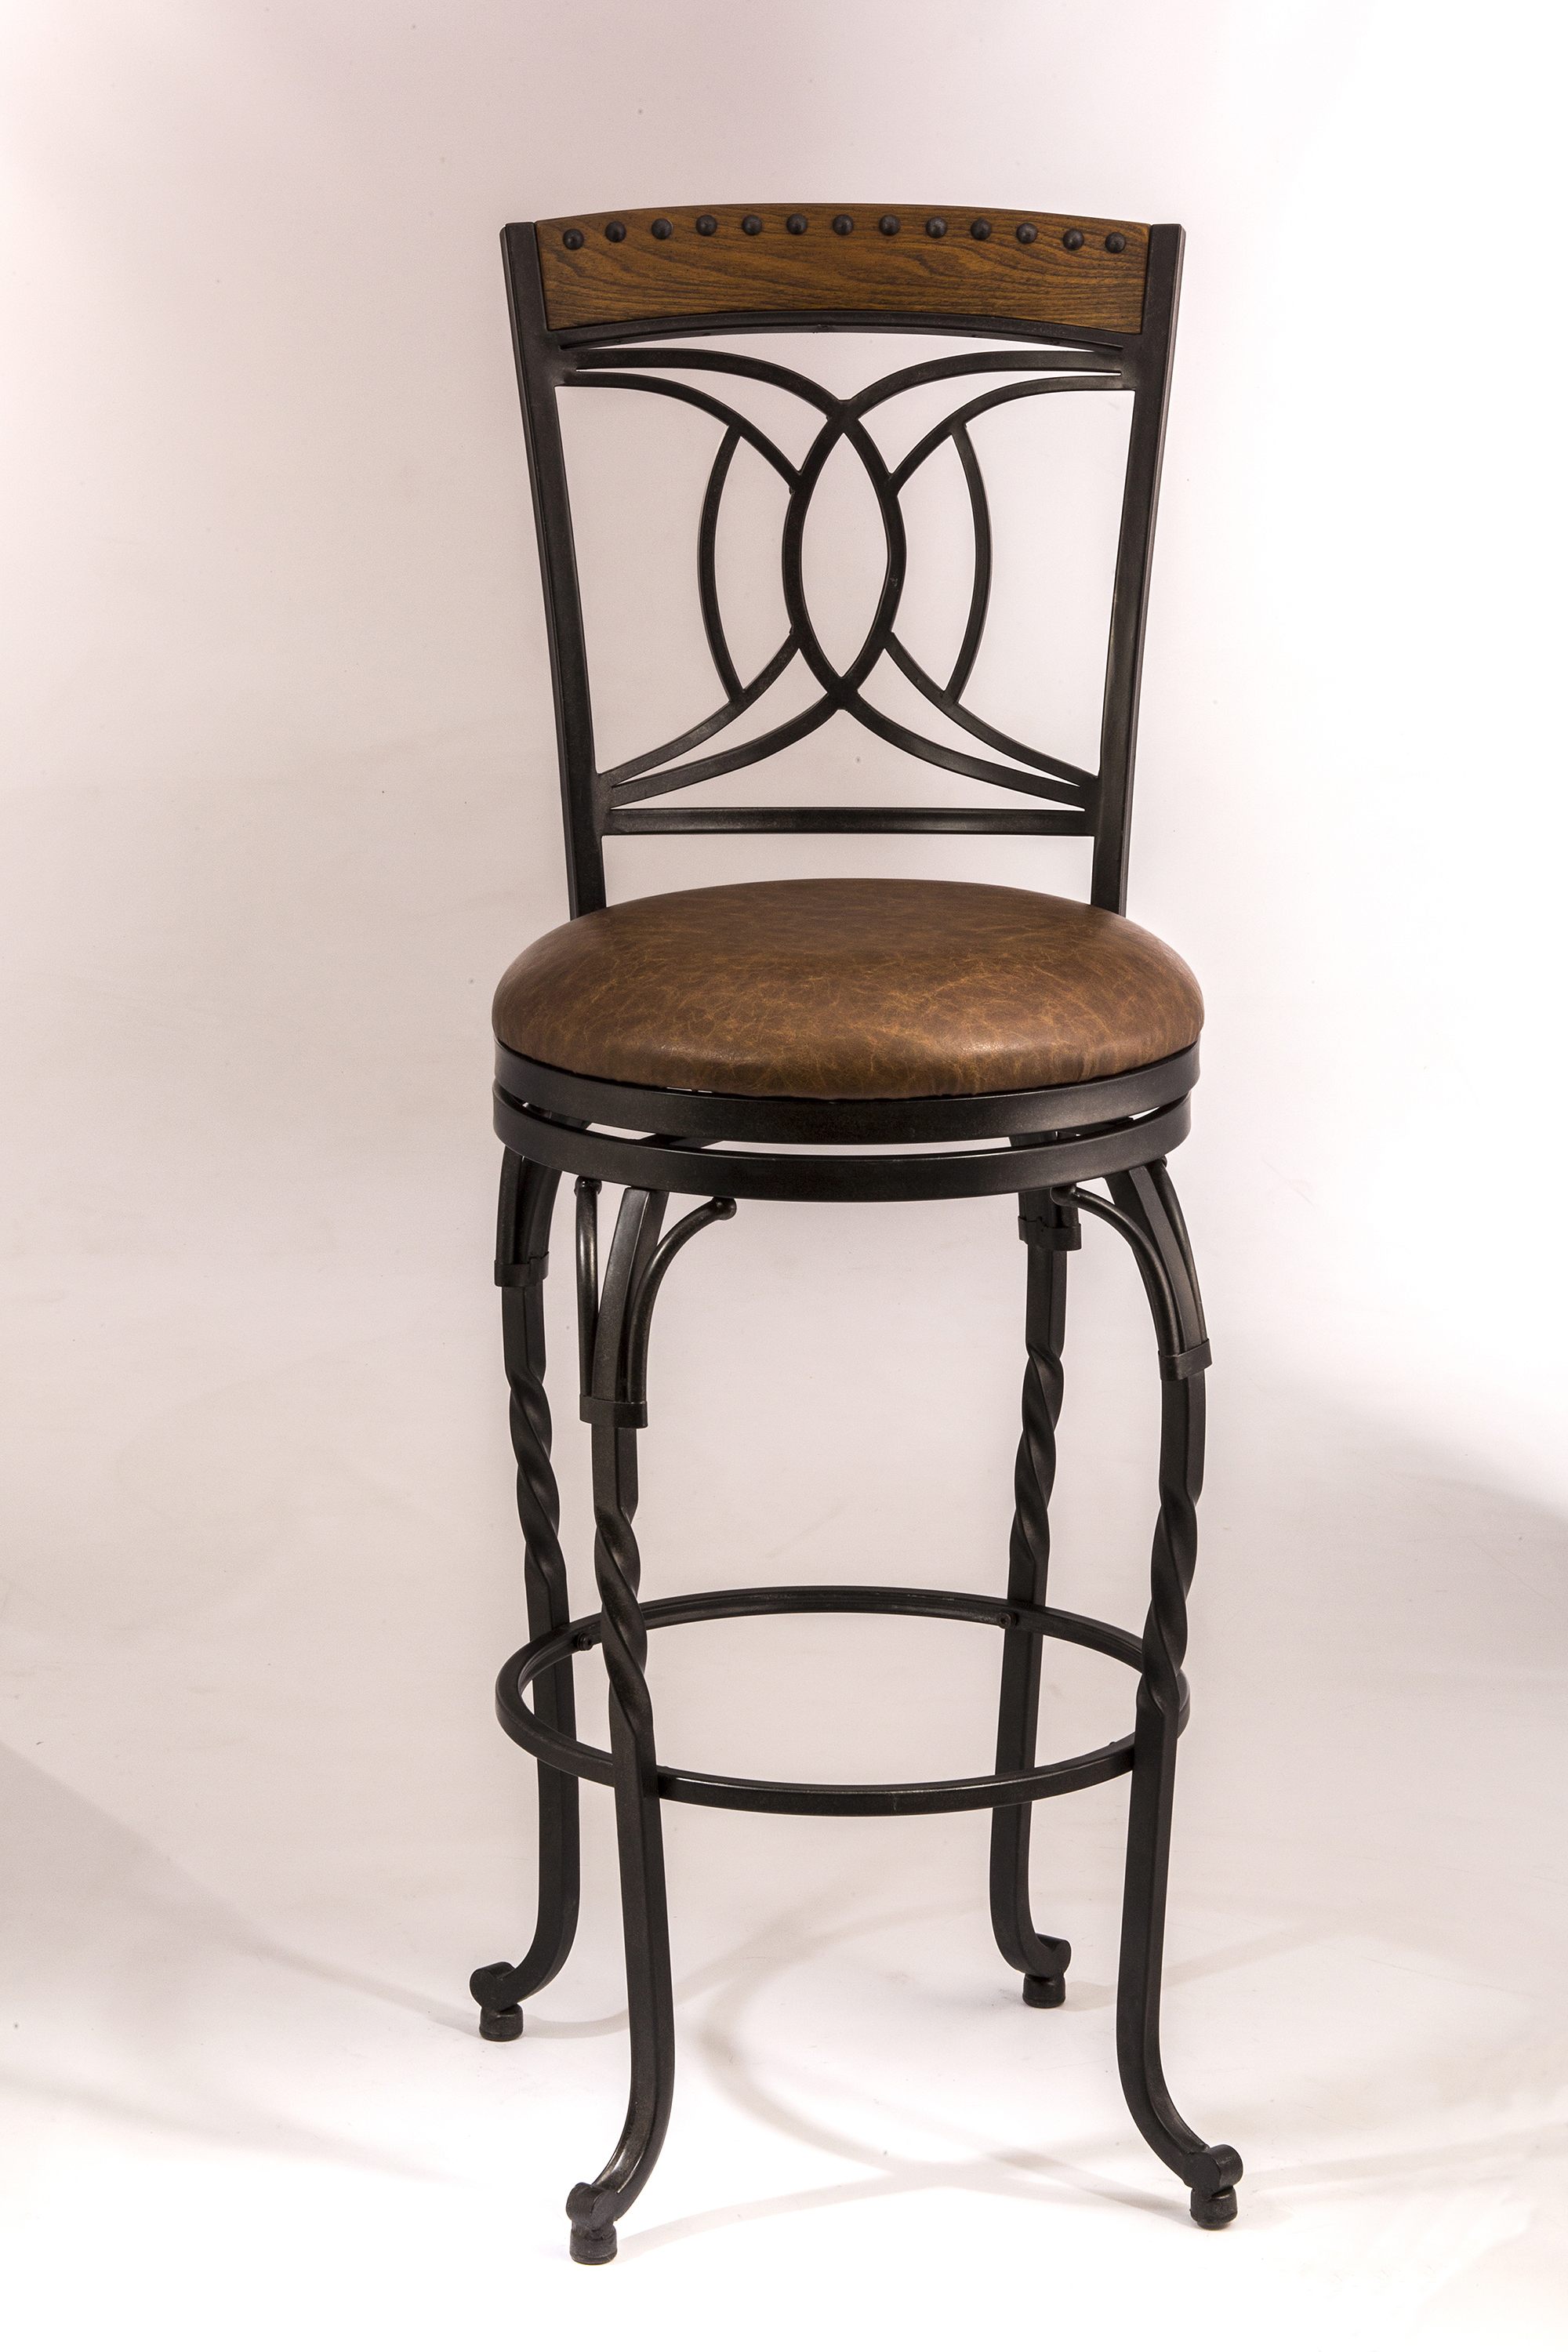 Hillsdale Metal Stools Swivel Bar Stool - Item Number: 5701-830